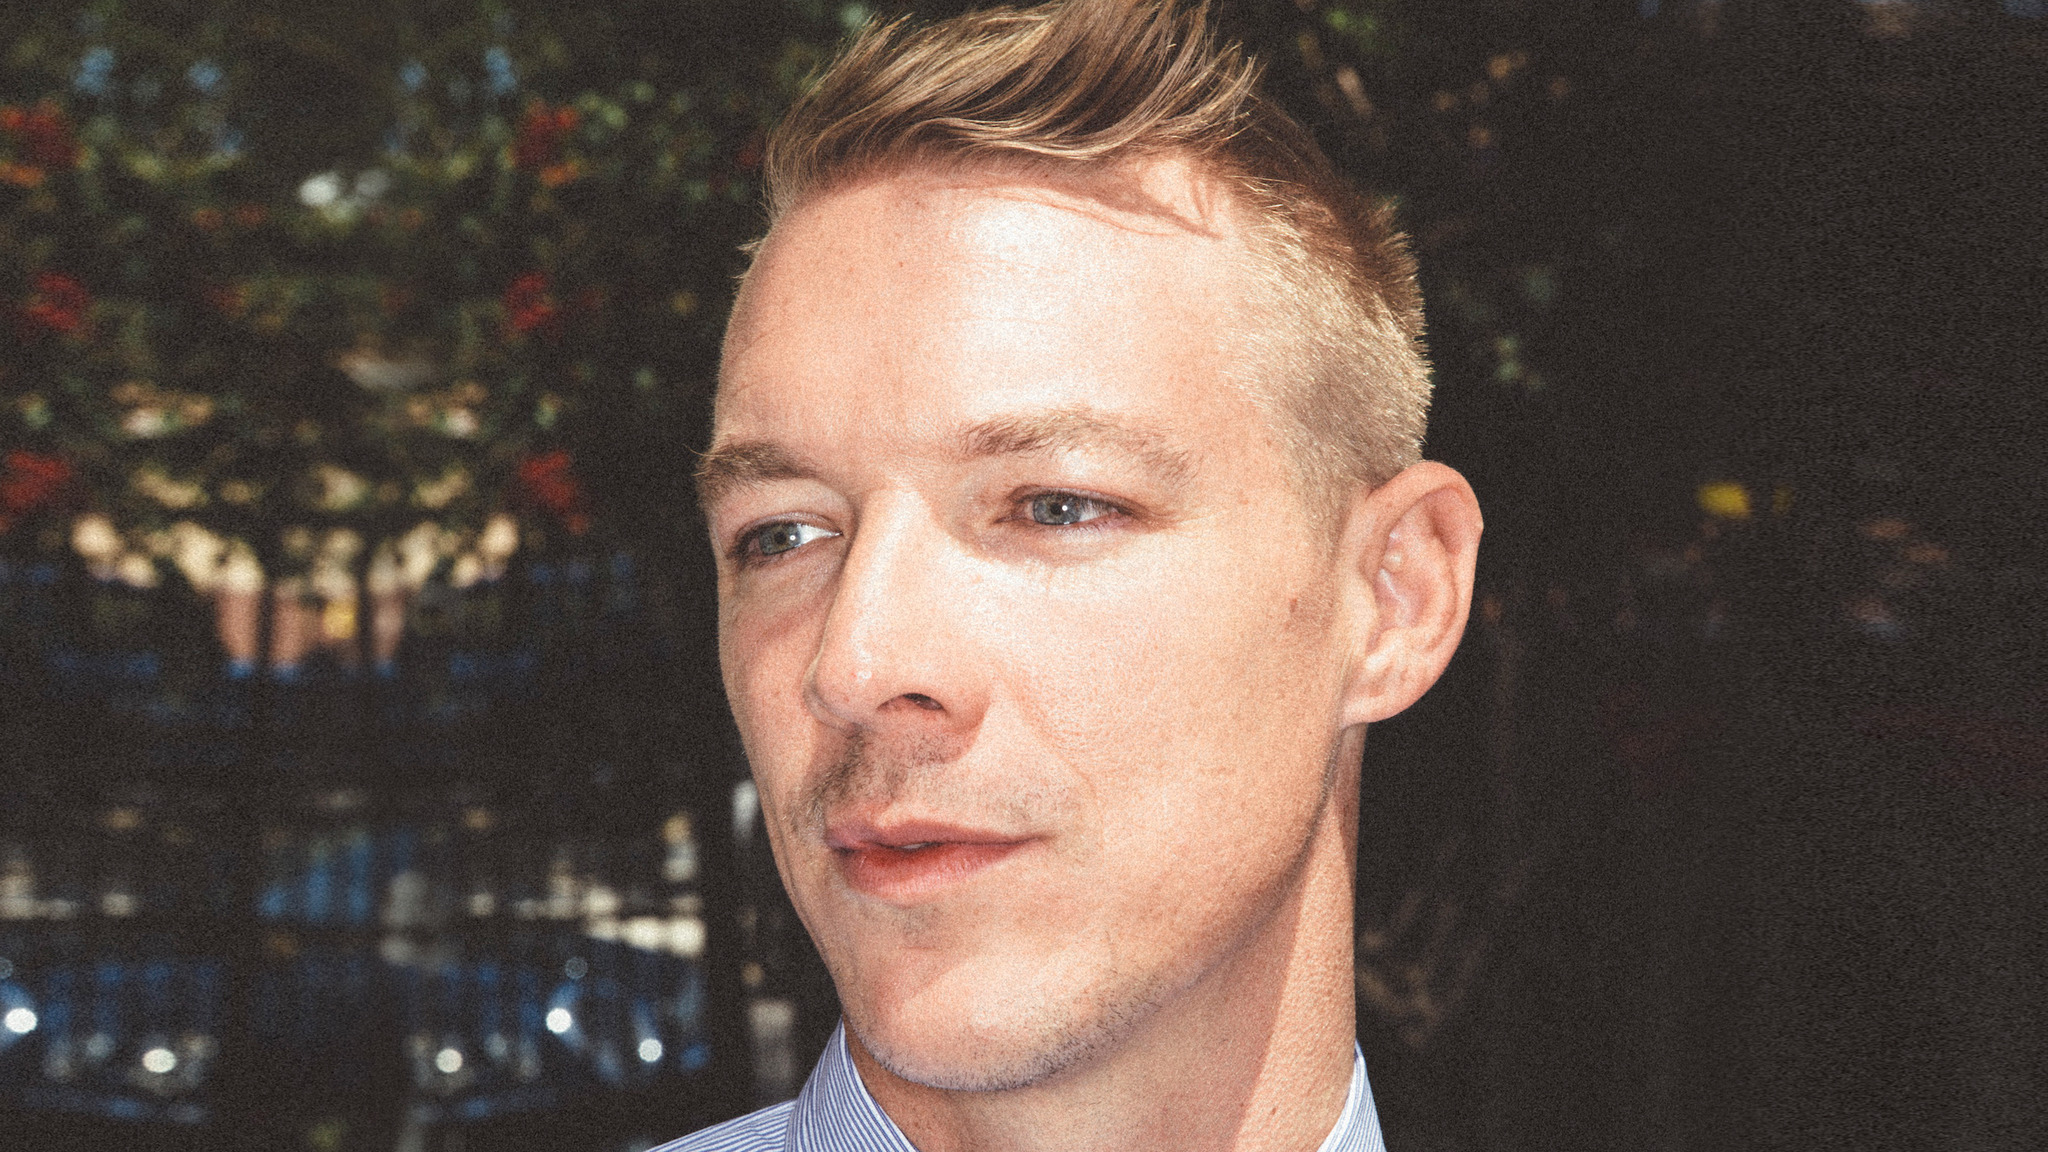 Diplo Images